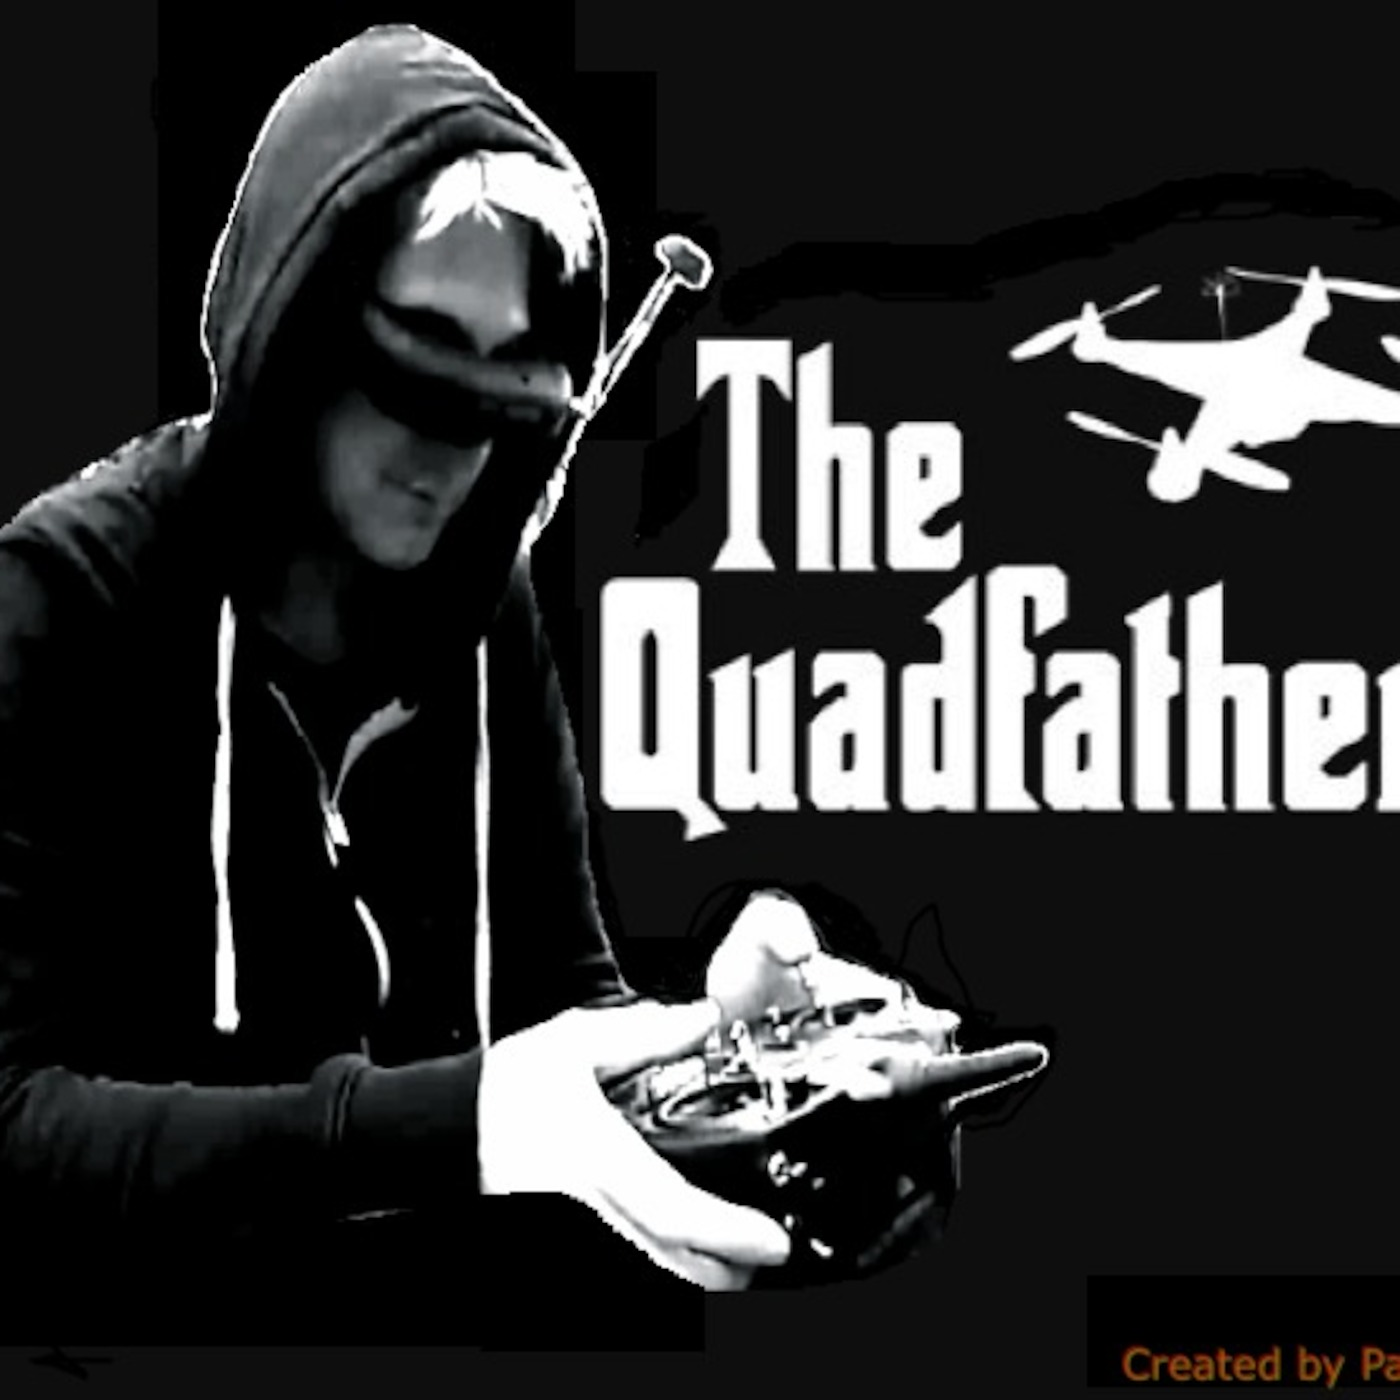 The Quadcast